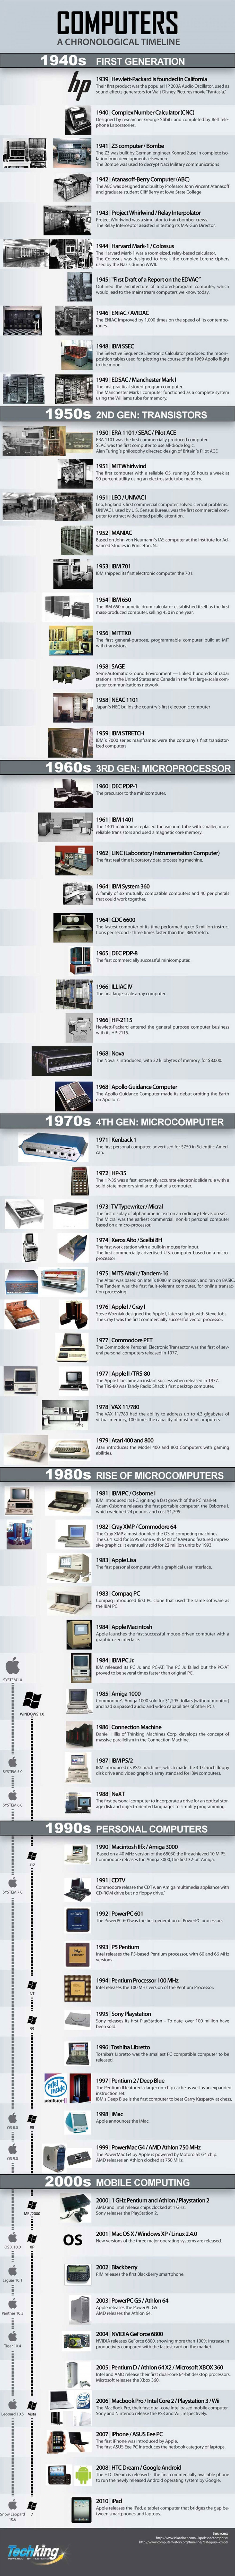 computers-through-history